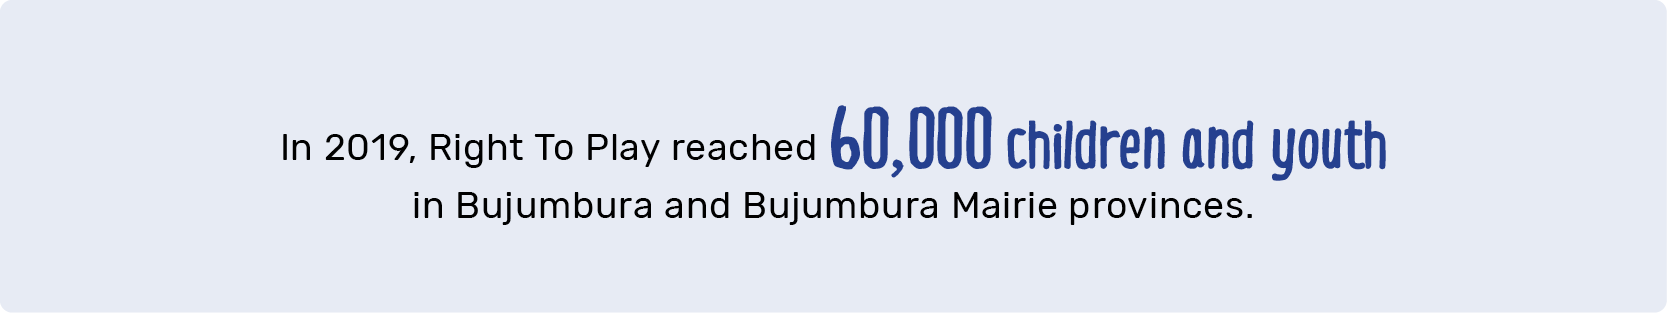 Burundi - Country Pages - Reach Stat.png